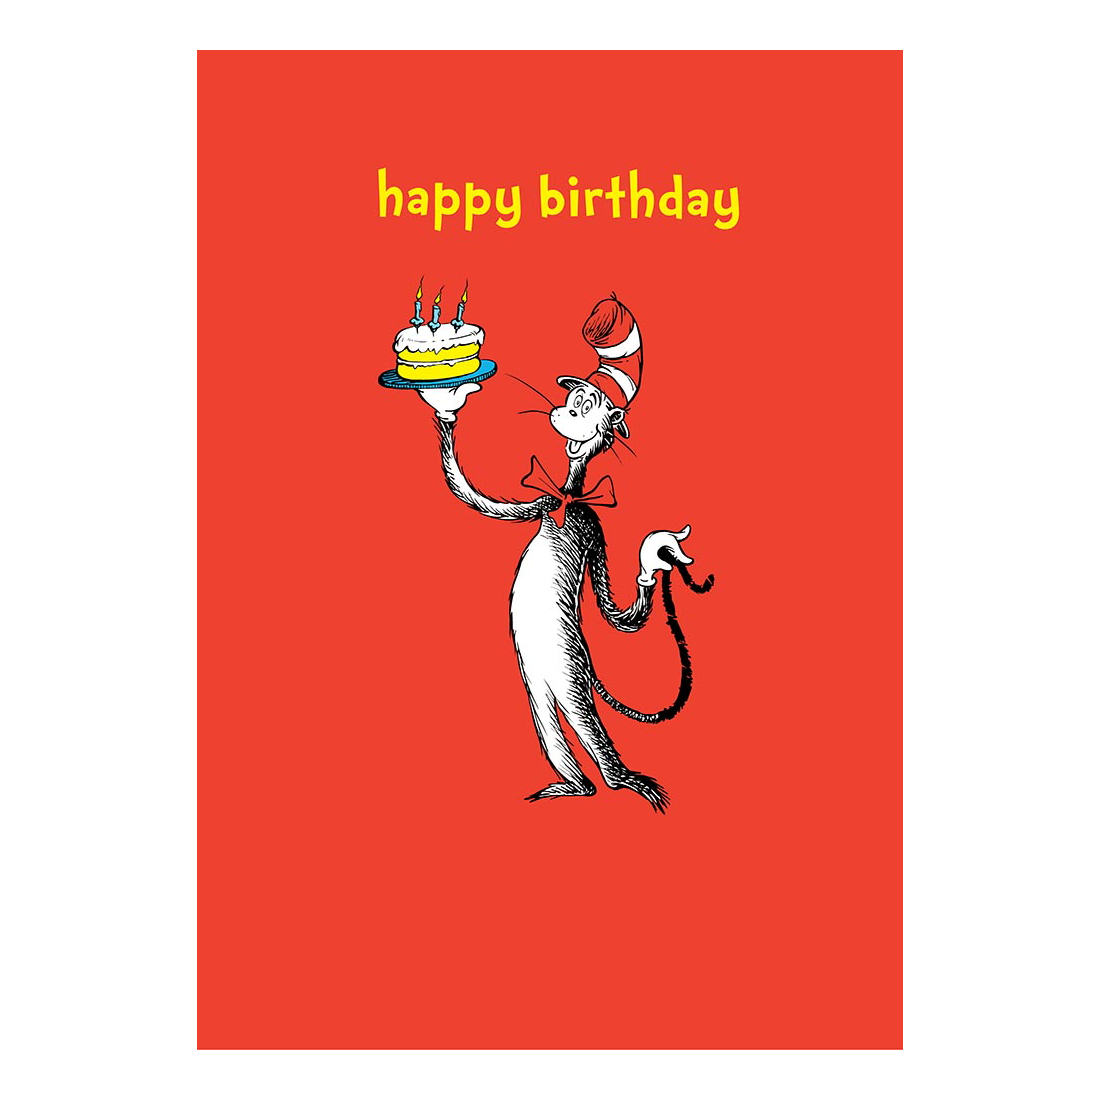 Details About DR SEUSS HAPPY BIRTHDAY GREETING CARD GIFT CAT IN THE HAT RETRO CAKE BOOK KIDS